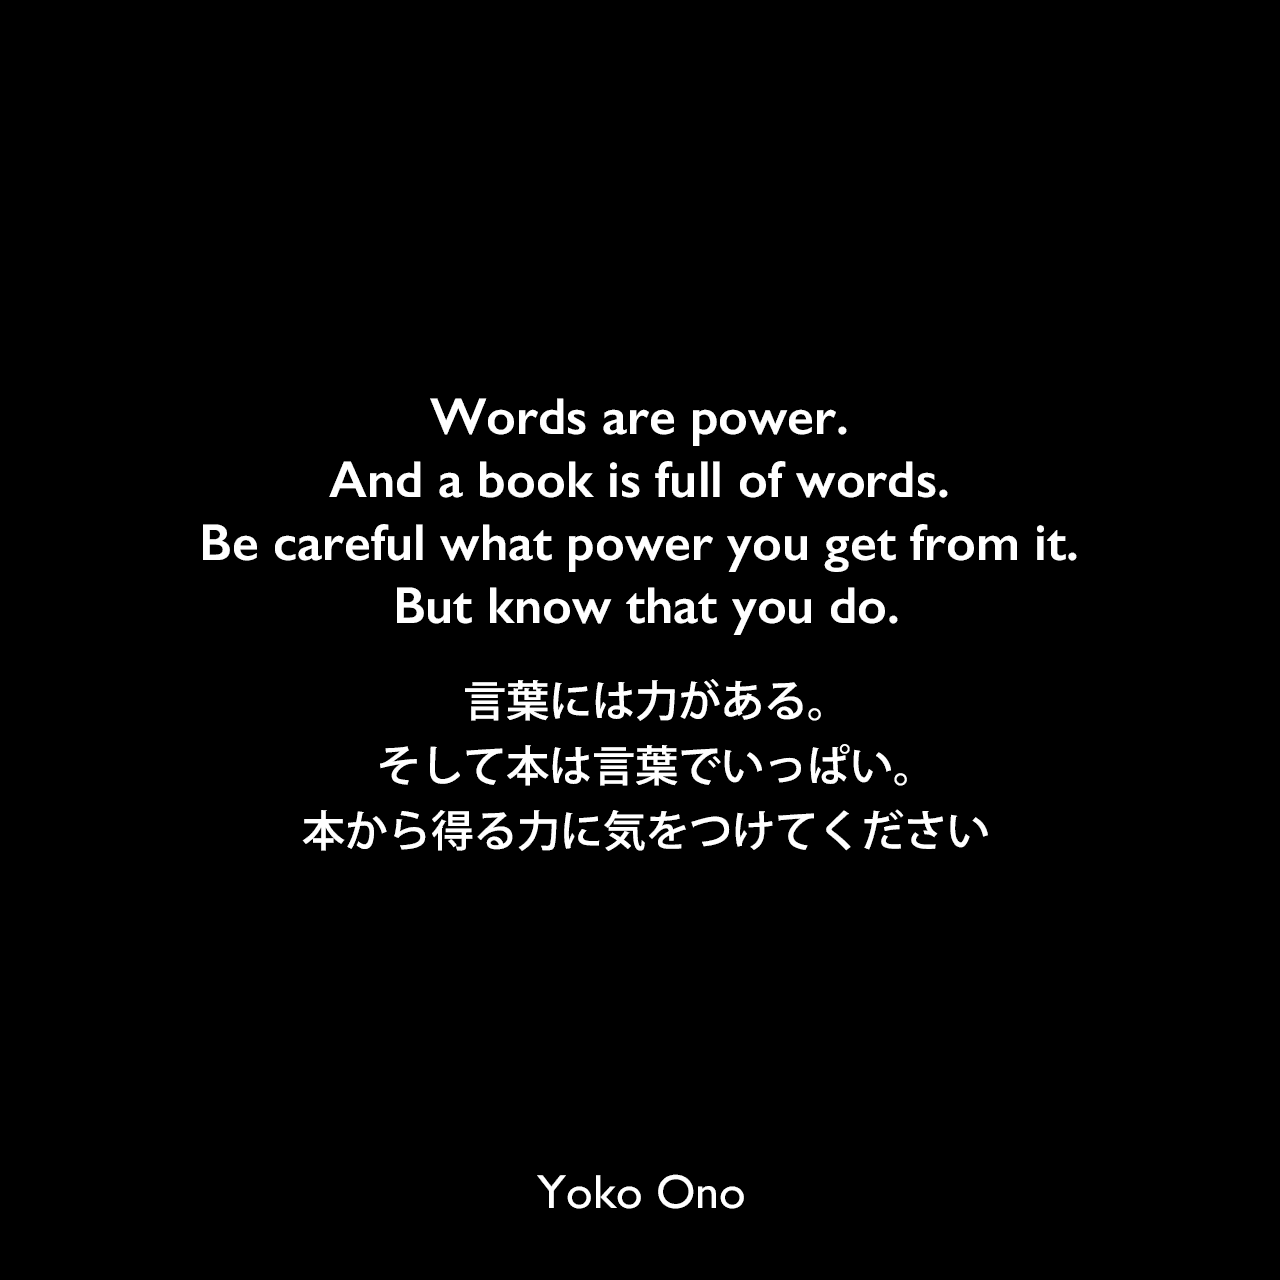 Words are power. And a book is full of words. Be careful what power you get from it. But know that you do.言葉には力がある。そして本は言葉でいっぱい。本から得る力に気をつけてくださいYoko Ono